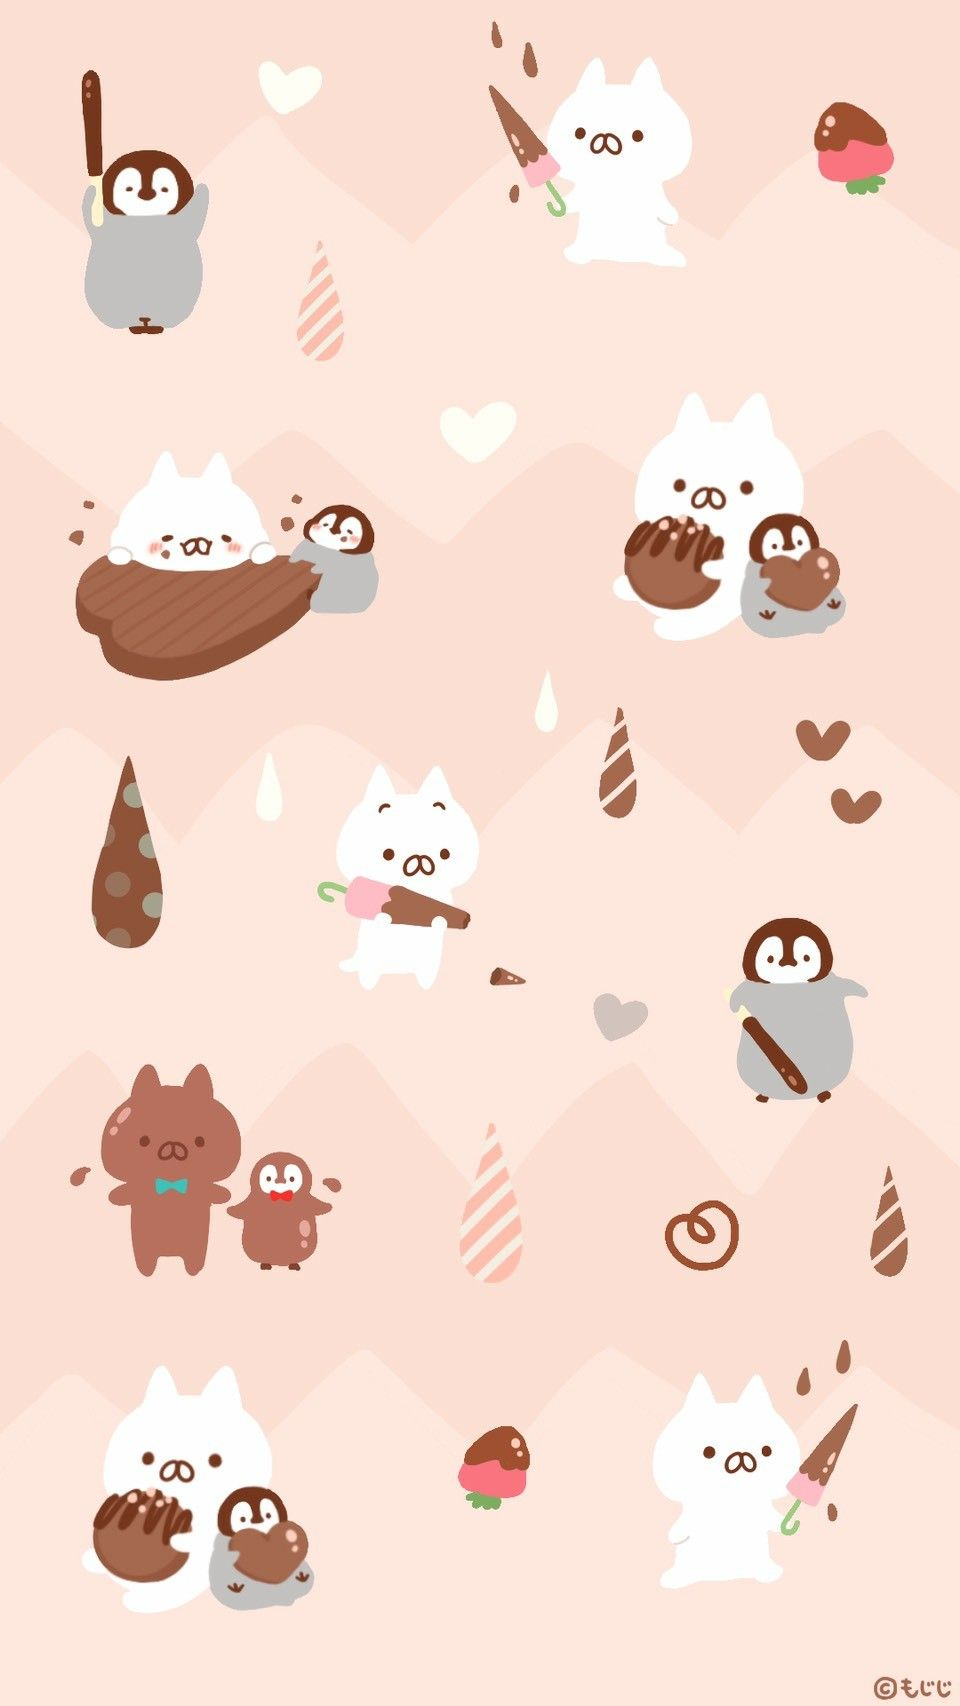 OnigiriNekoNoriPenguin Character design Cute wallpapers 960x1706